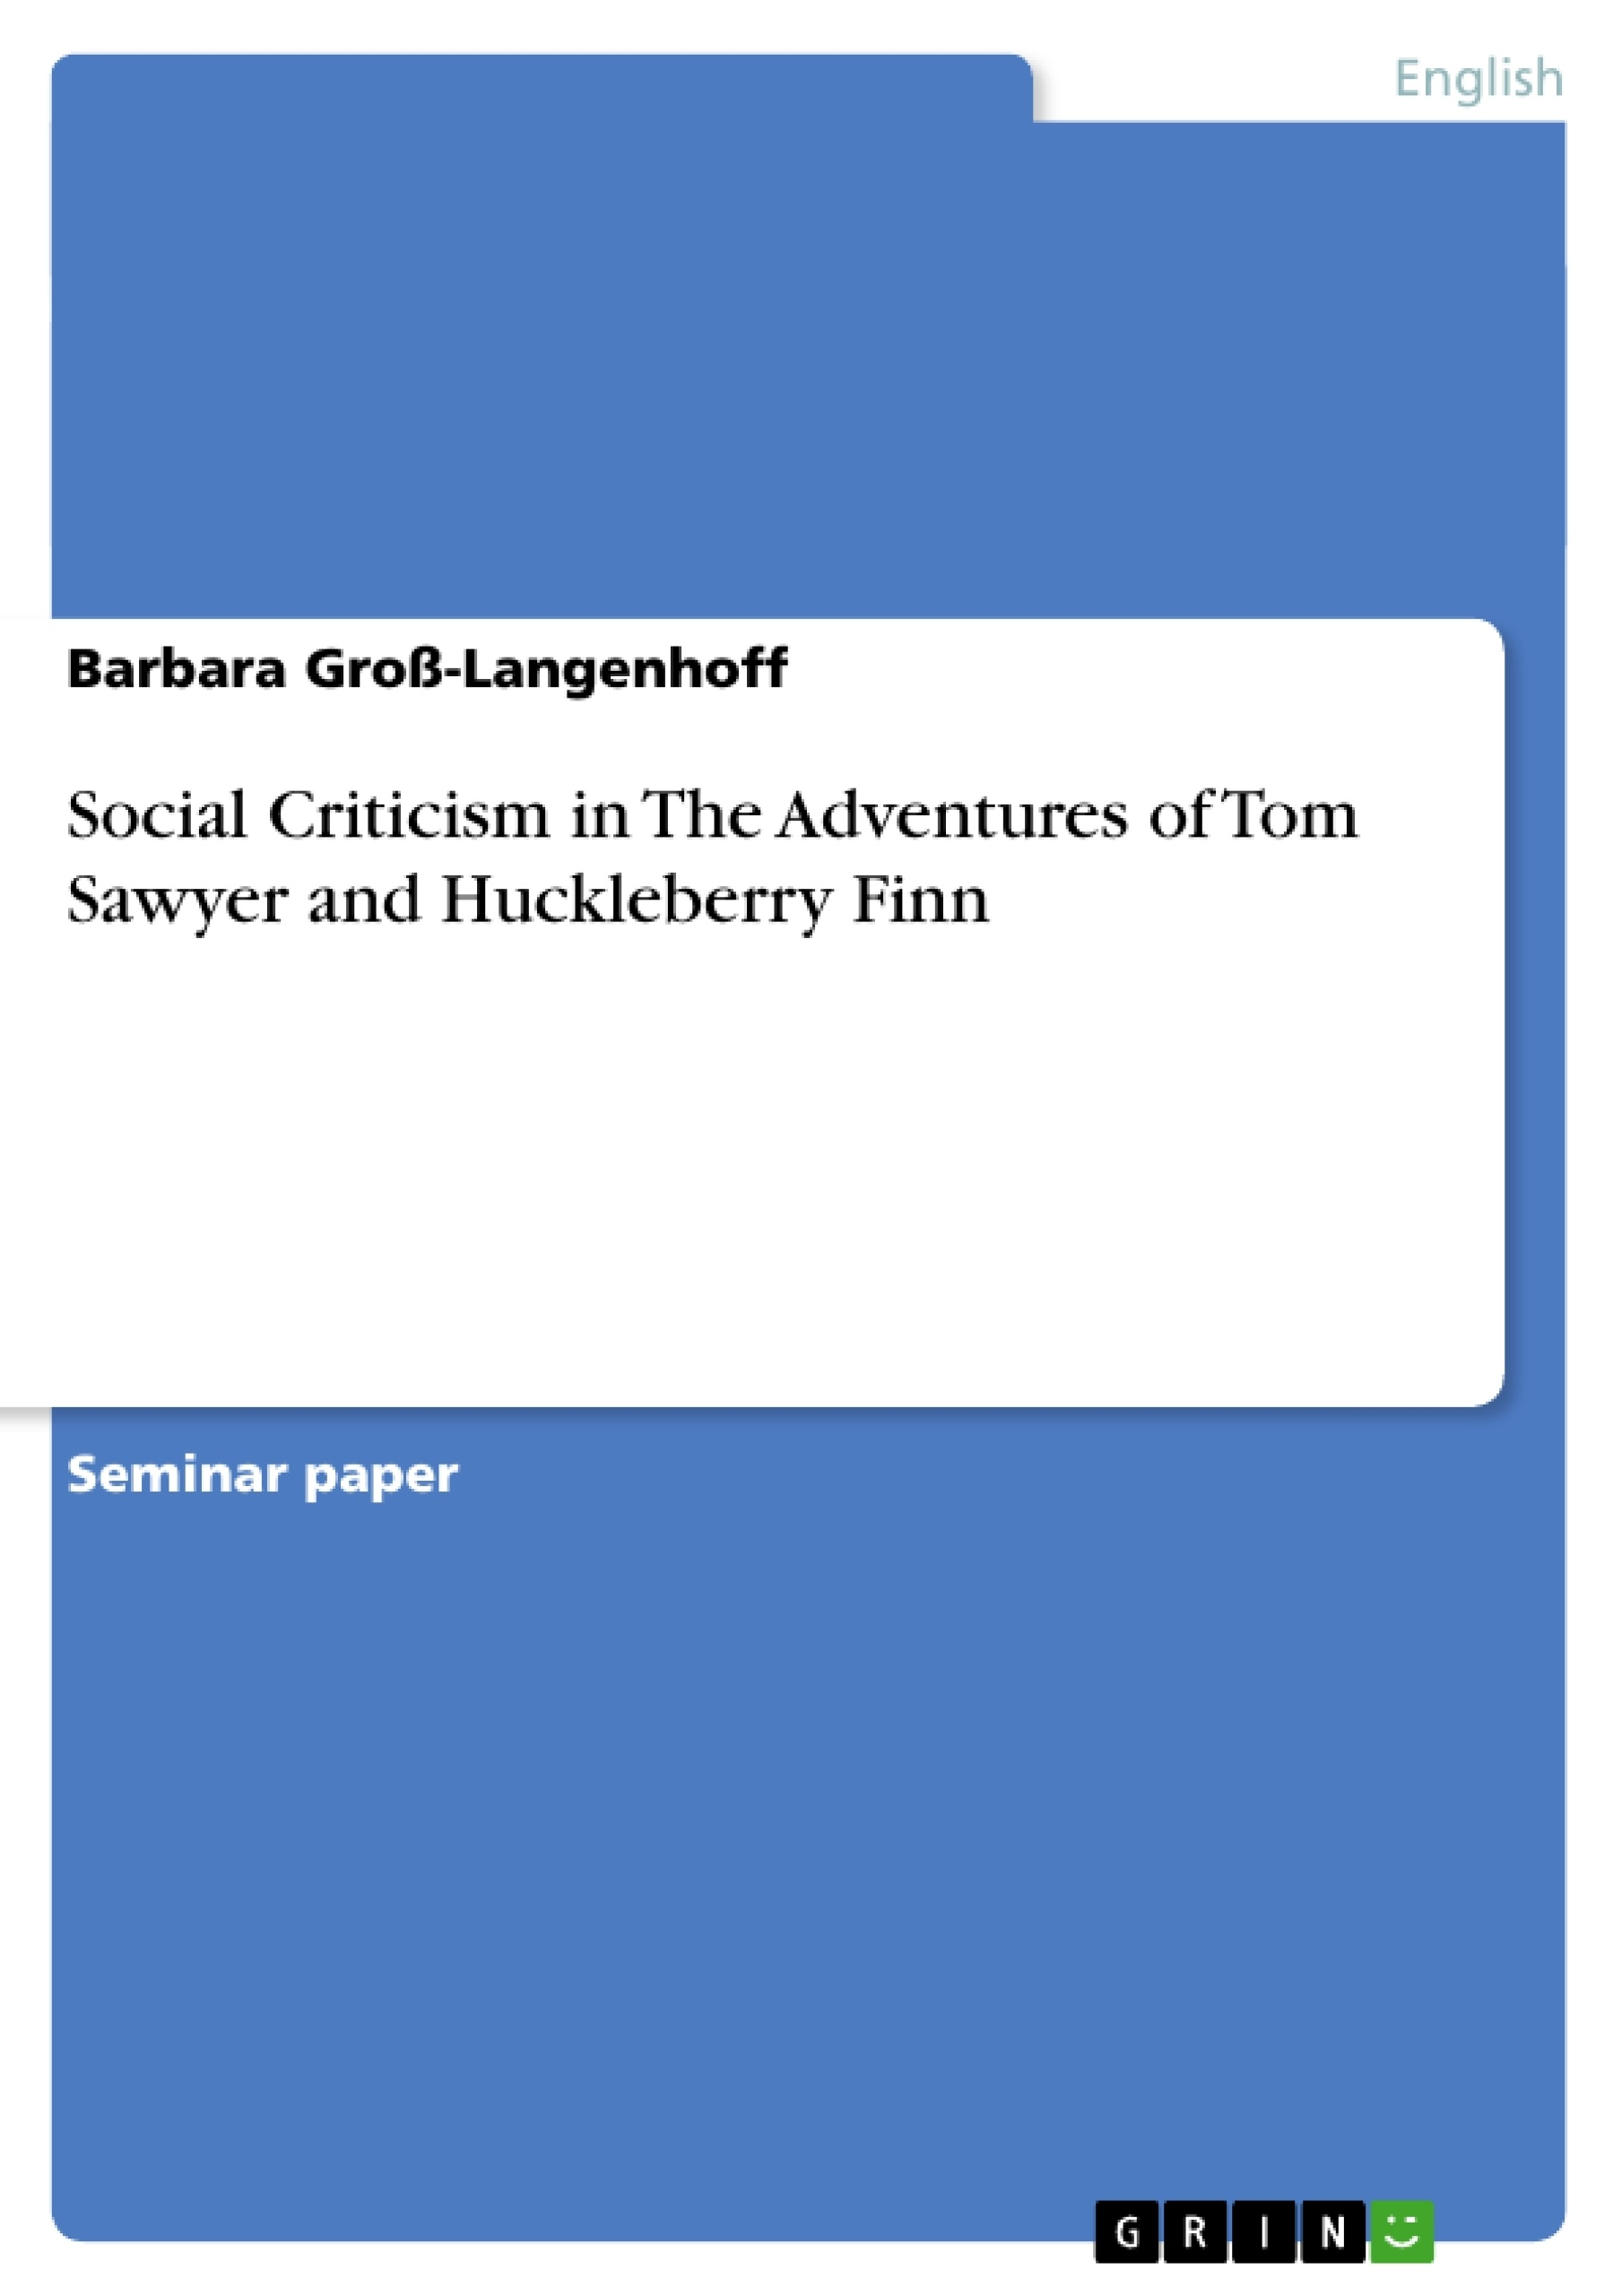 Social Criticism in The Adventures of Tom Sawyer and Huckleberry ...